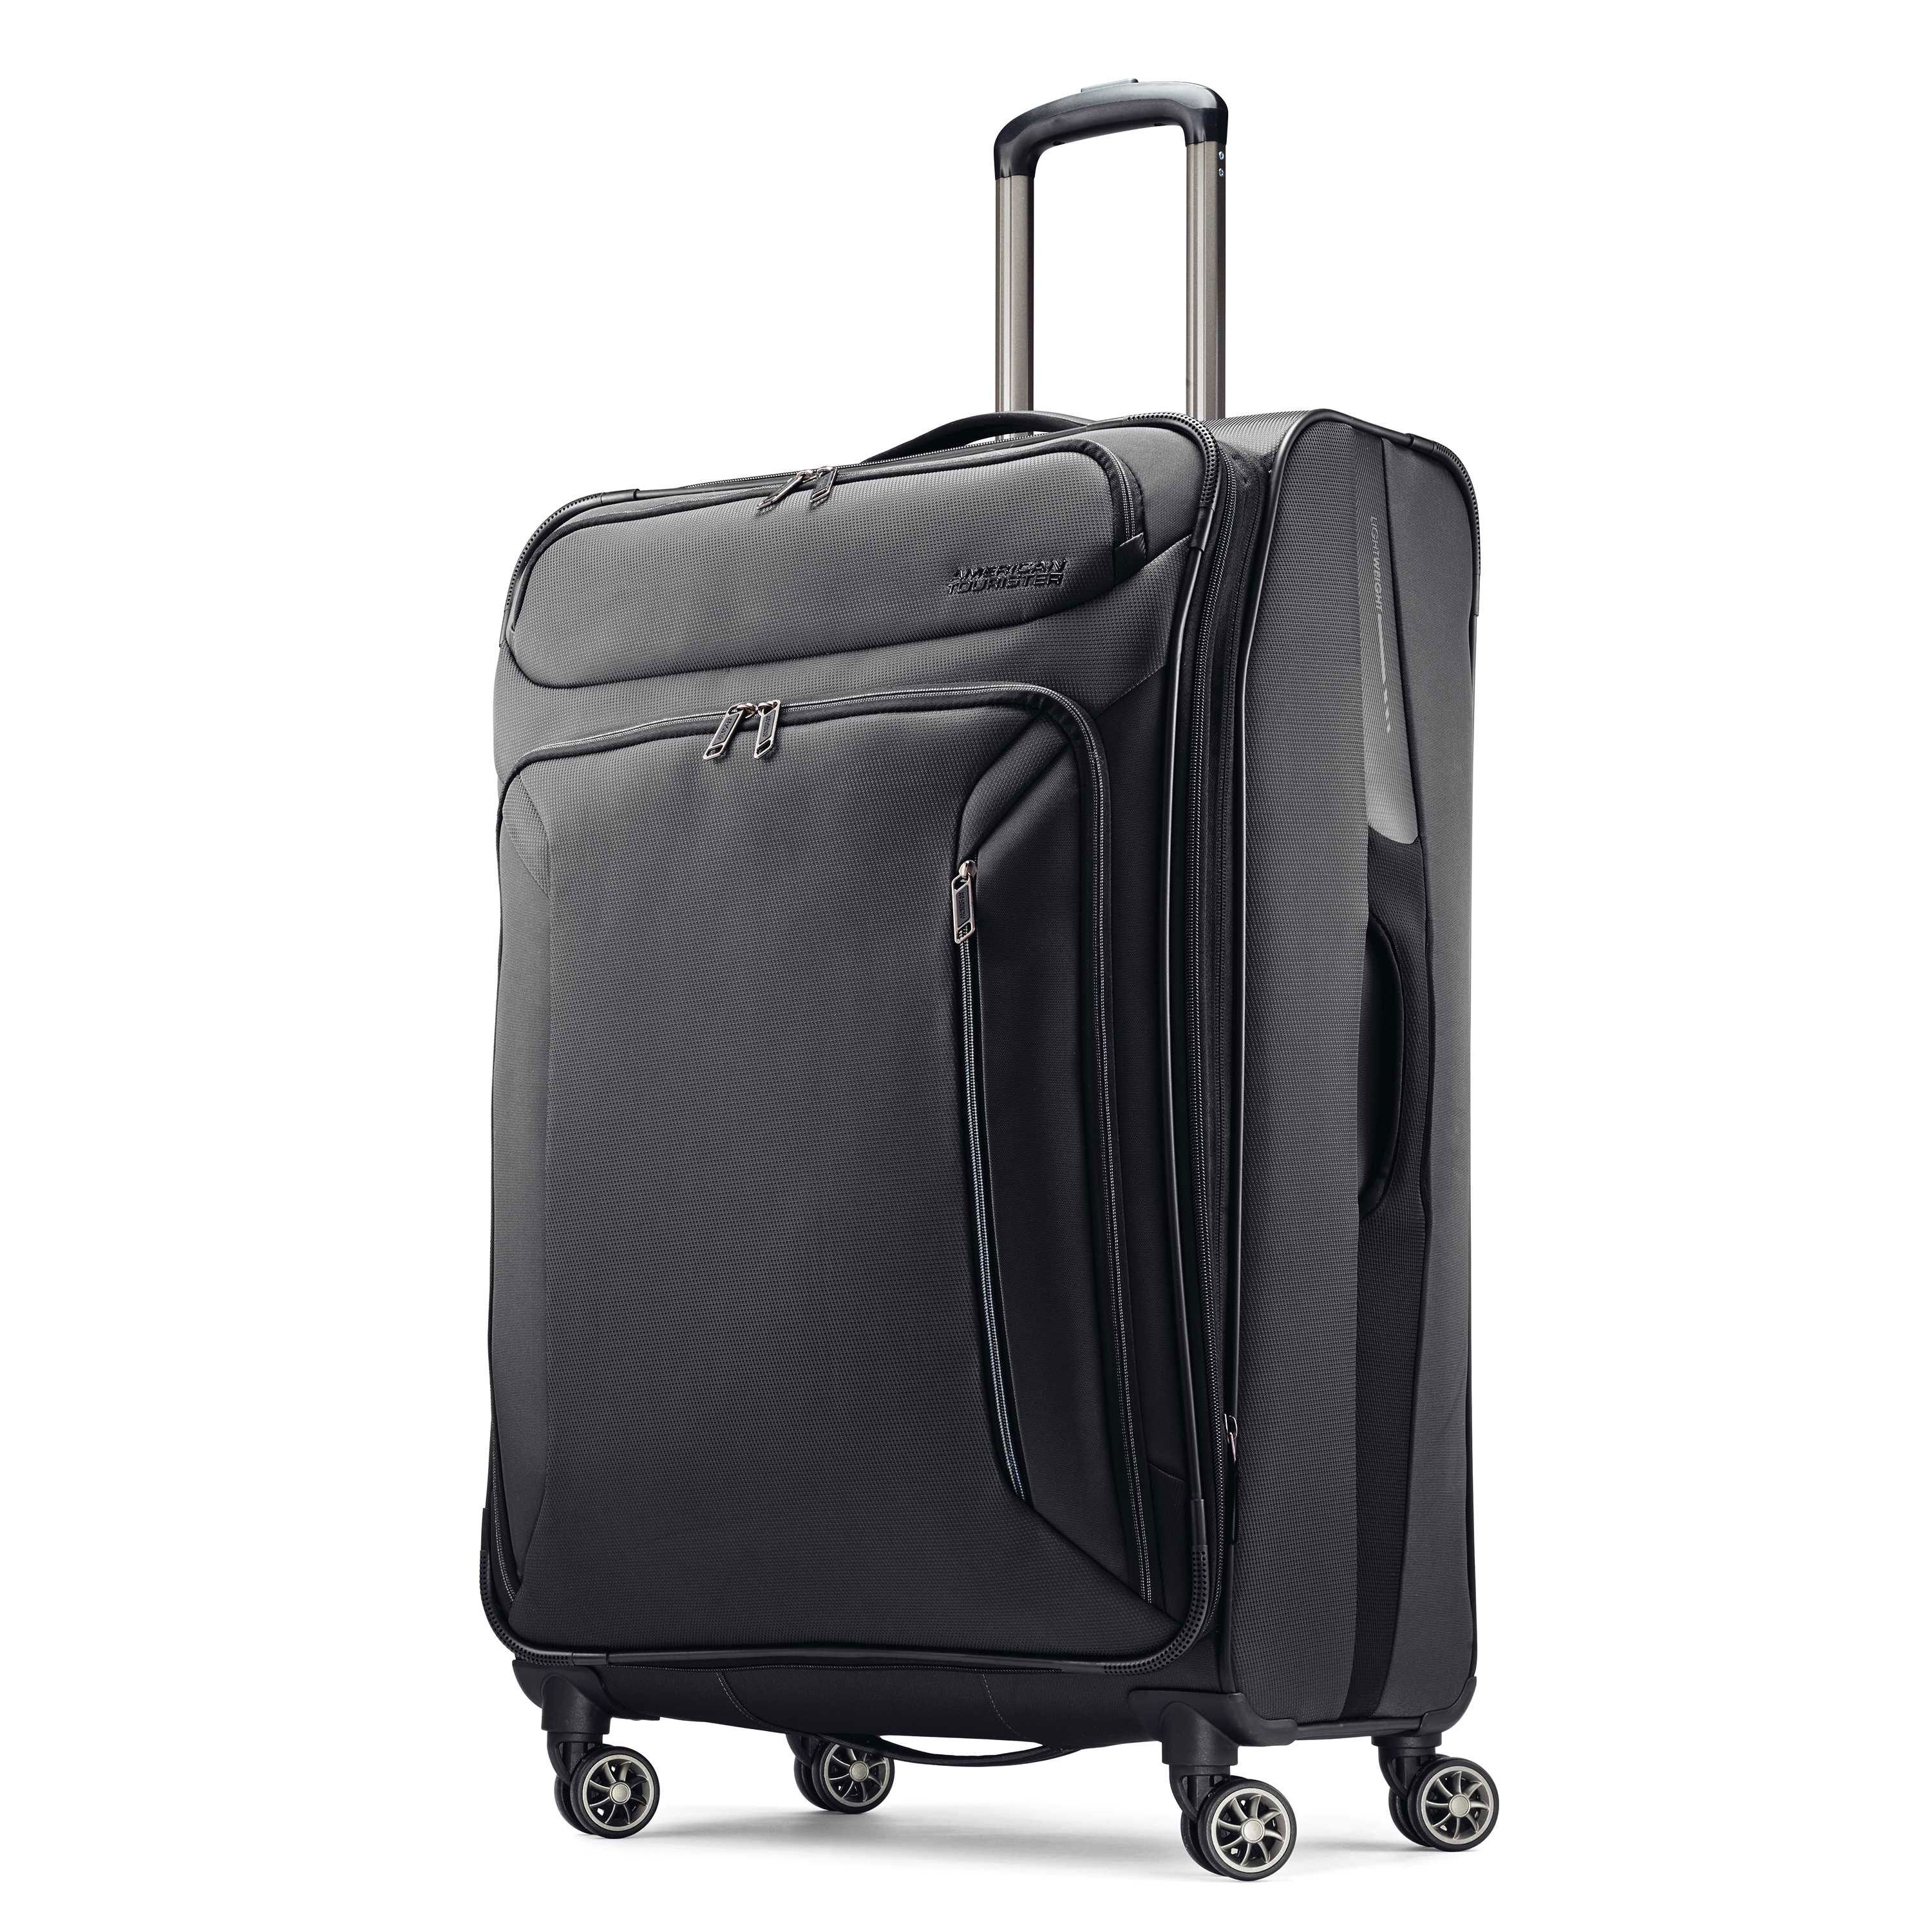 Suitcase American Tourister: User Reviews 54